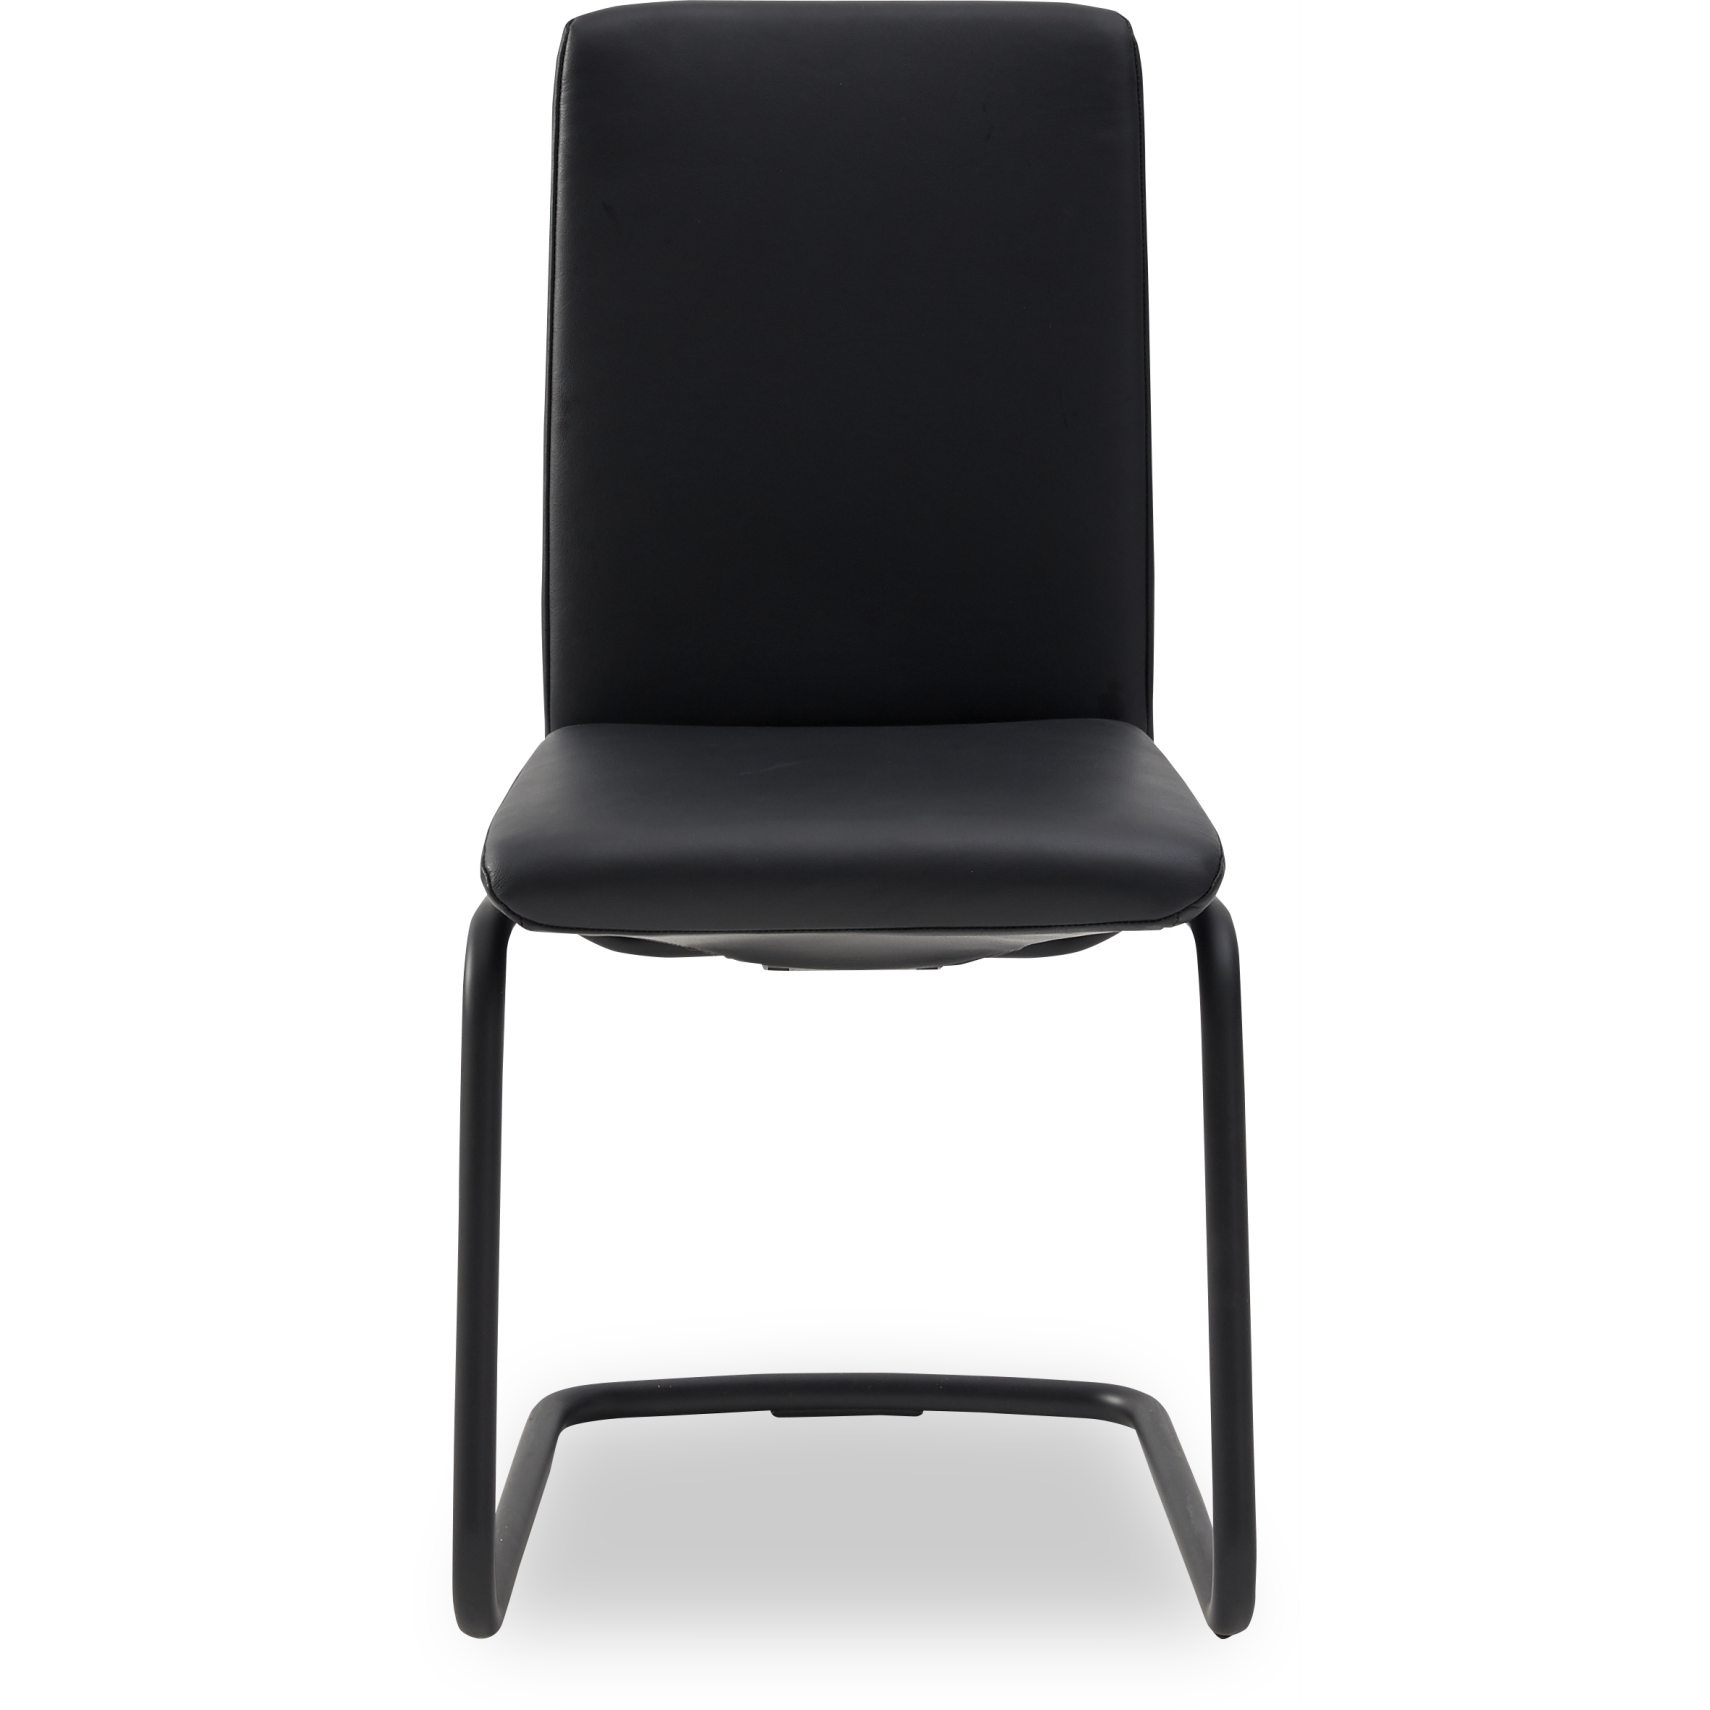 Stressless D400 Laurel low matstol - Paloma 9419 black läder och stomme i matt, svartlackerad metall